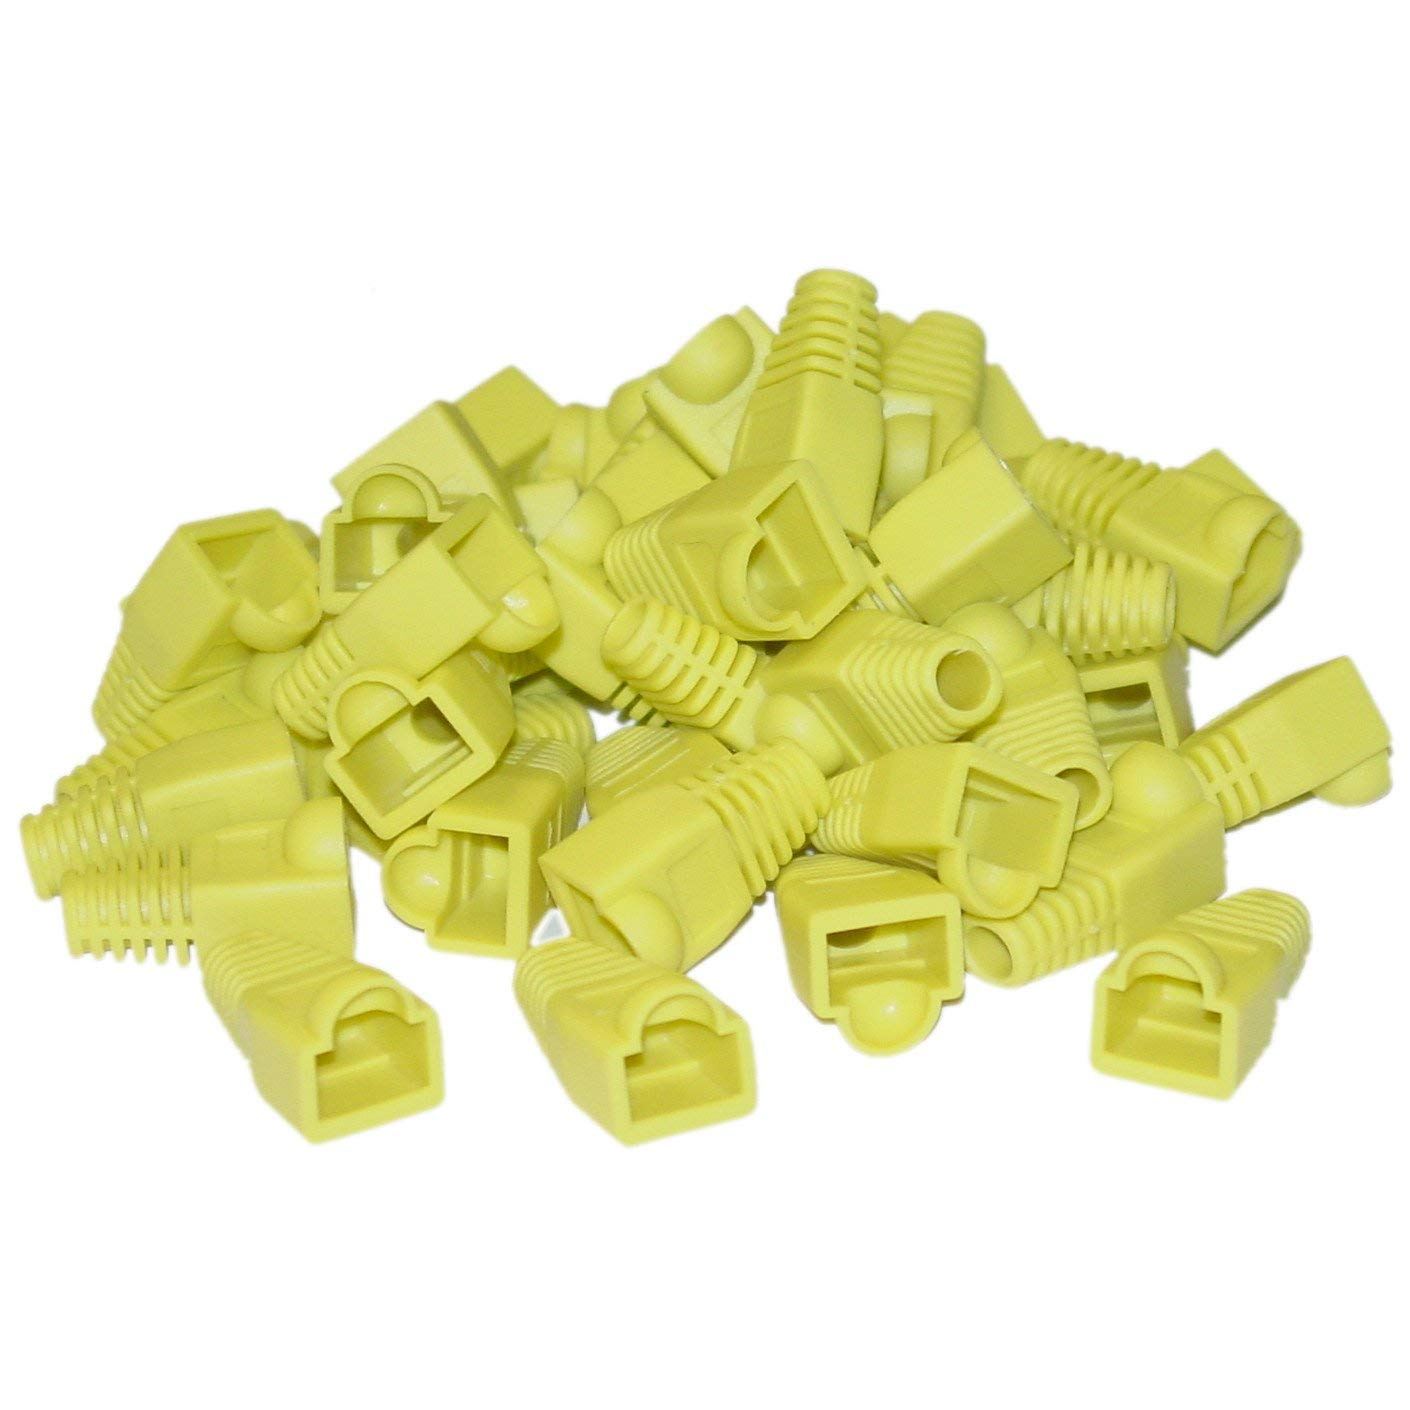 Yellow 50 Pieces Per Bag GOWOS 10 Pack RJ45 Strain Relief Boots